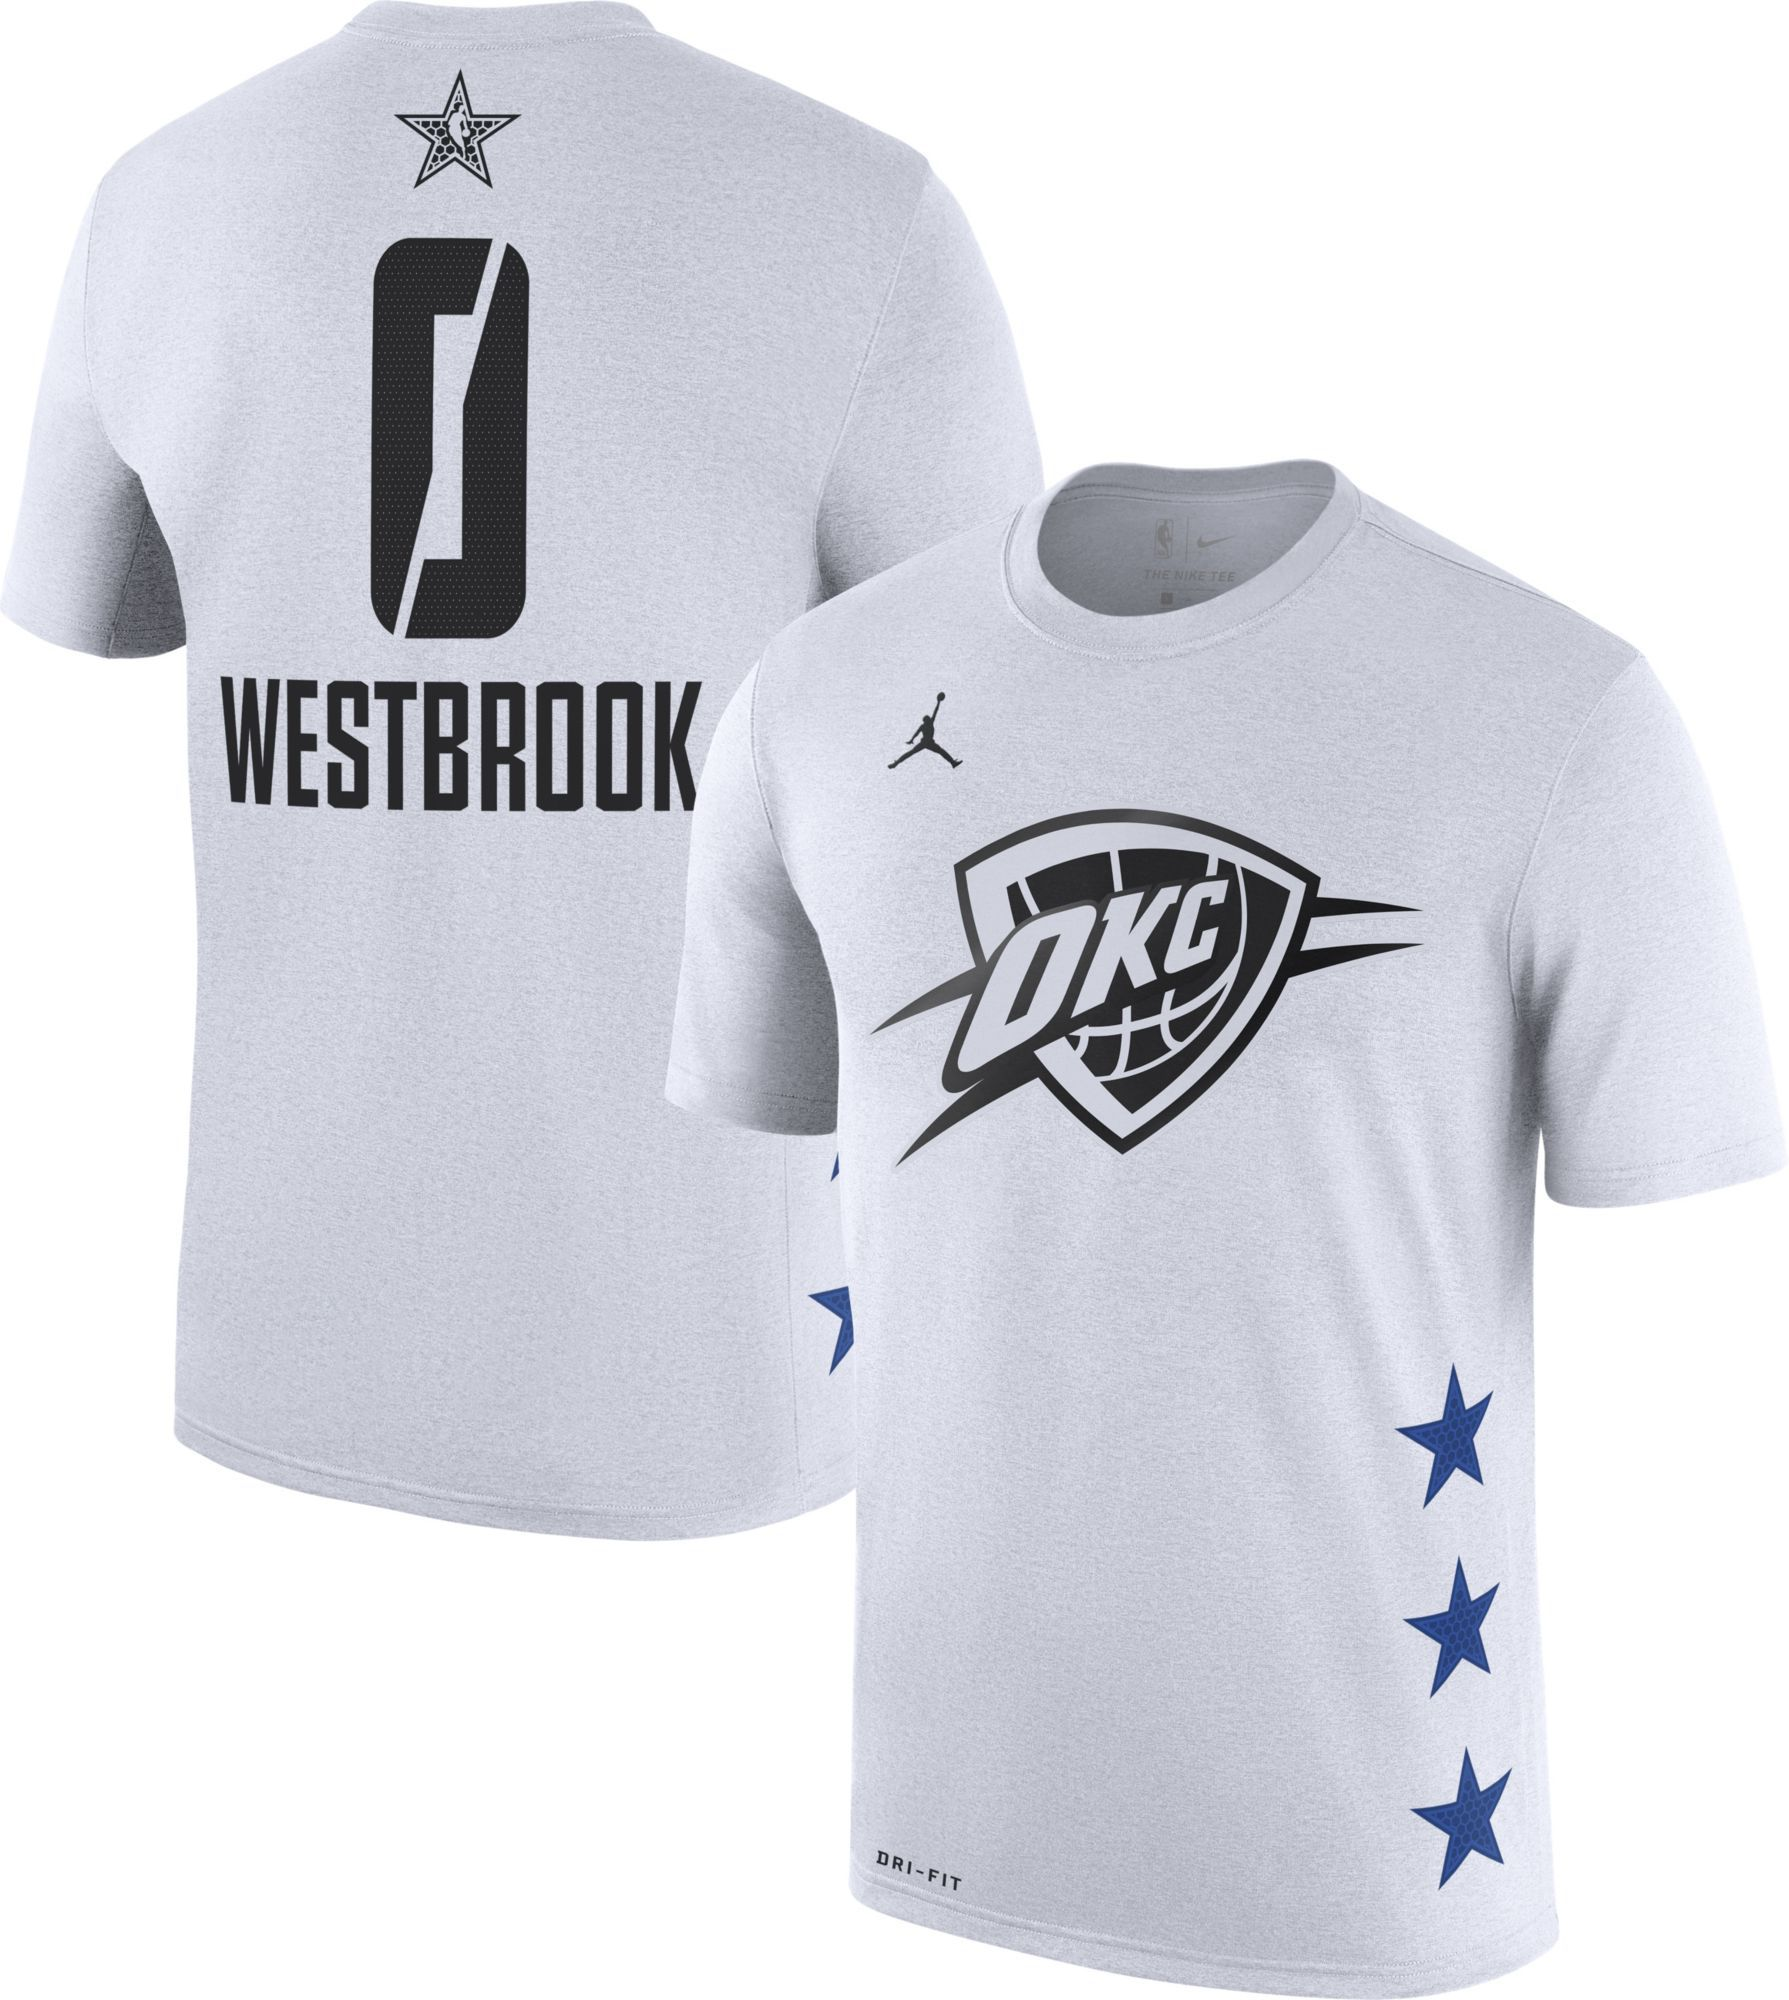 a600415e2 Jordan Men's 2019 NBA All-Star Game Russell Westbrook Dri-FIT White T-Shirt,  Size: Small